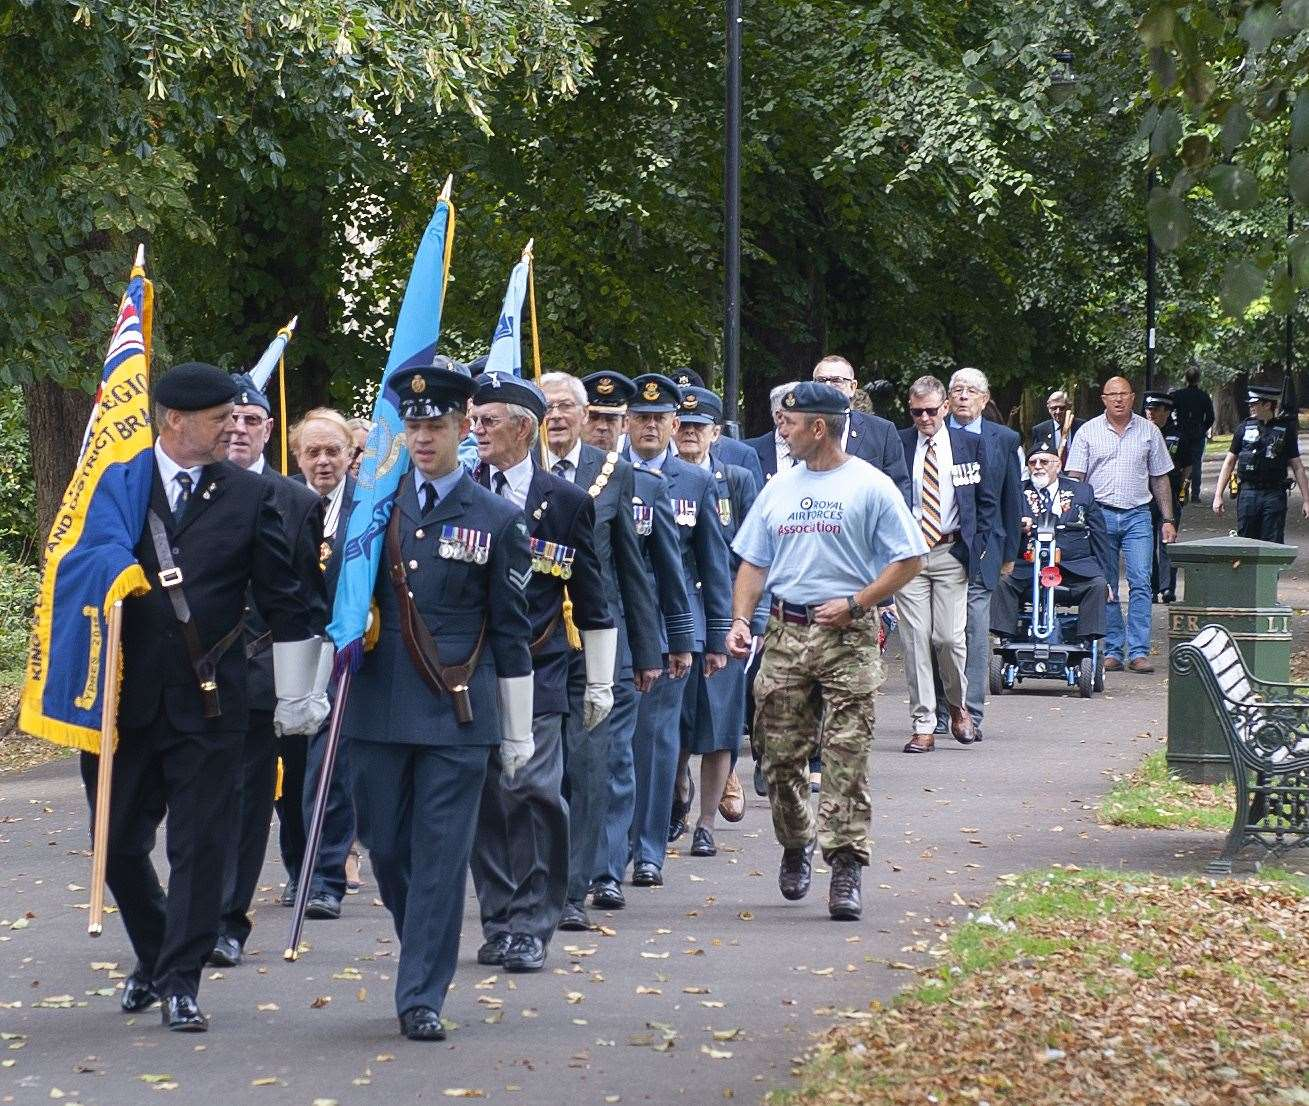 Royal Air Forces Association 81st Anniversary of the Battle Of Britain Service of Commemoration. at Tower Gardens King's Lynn.. (51174922)